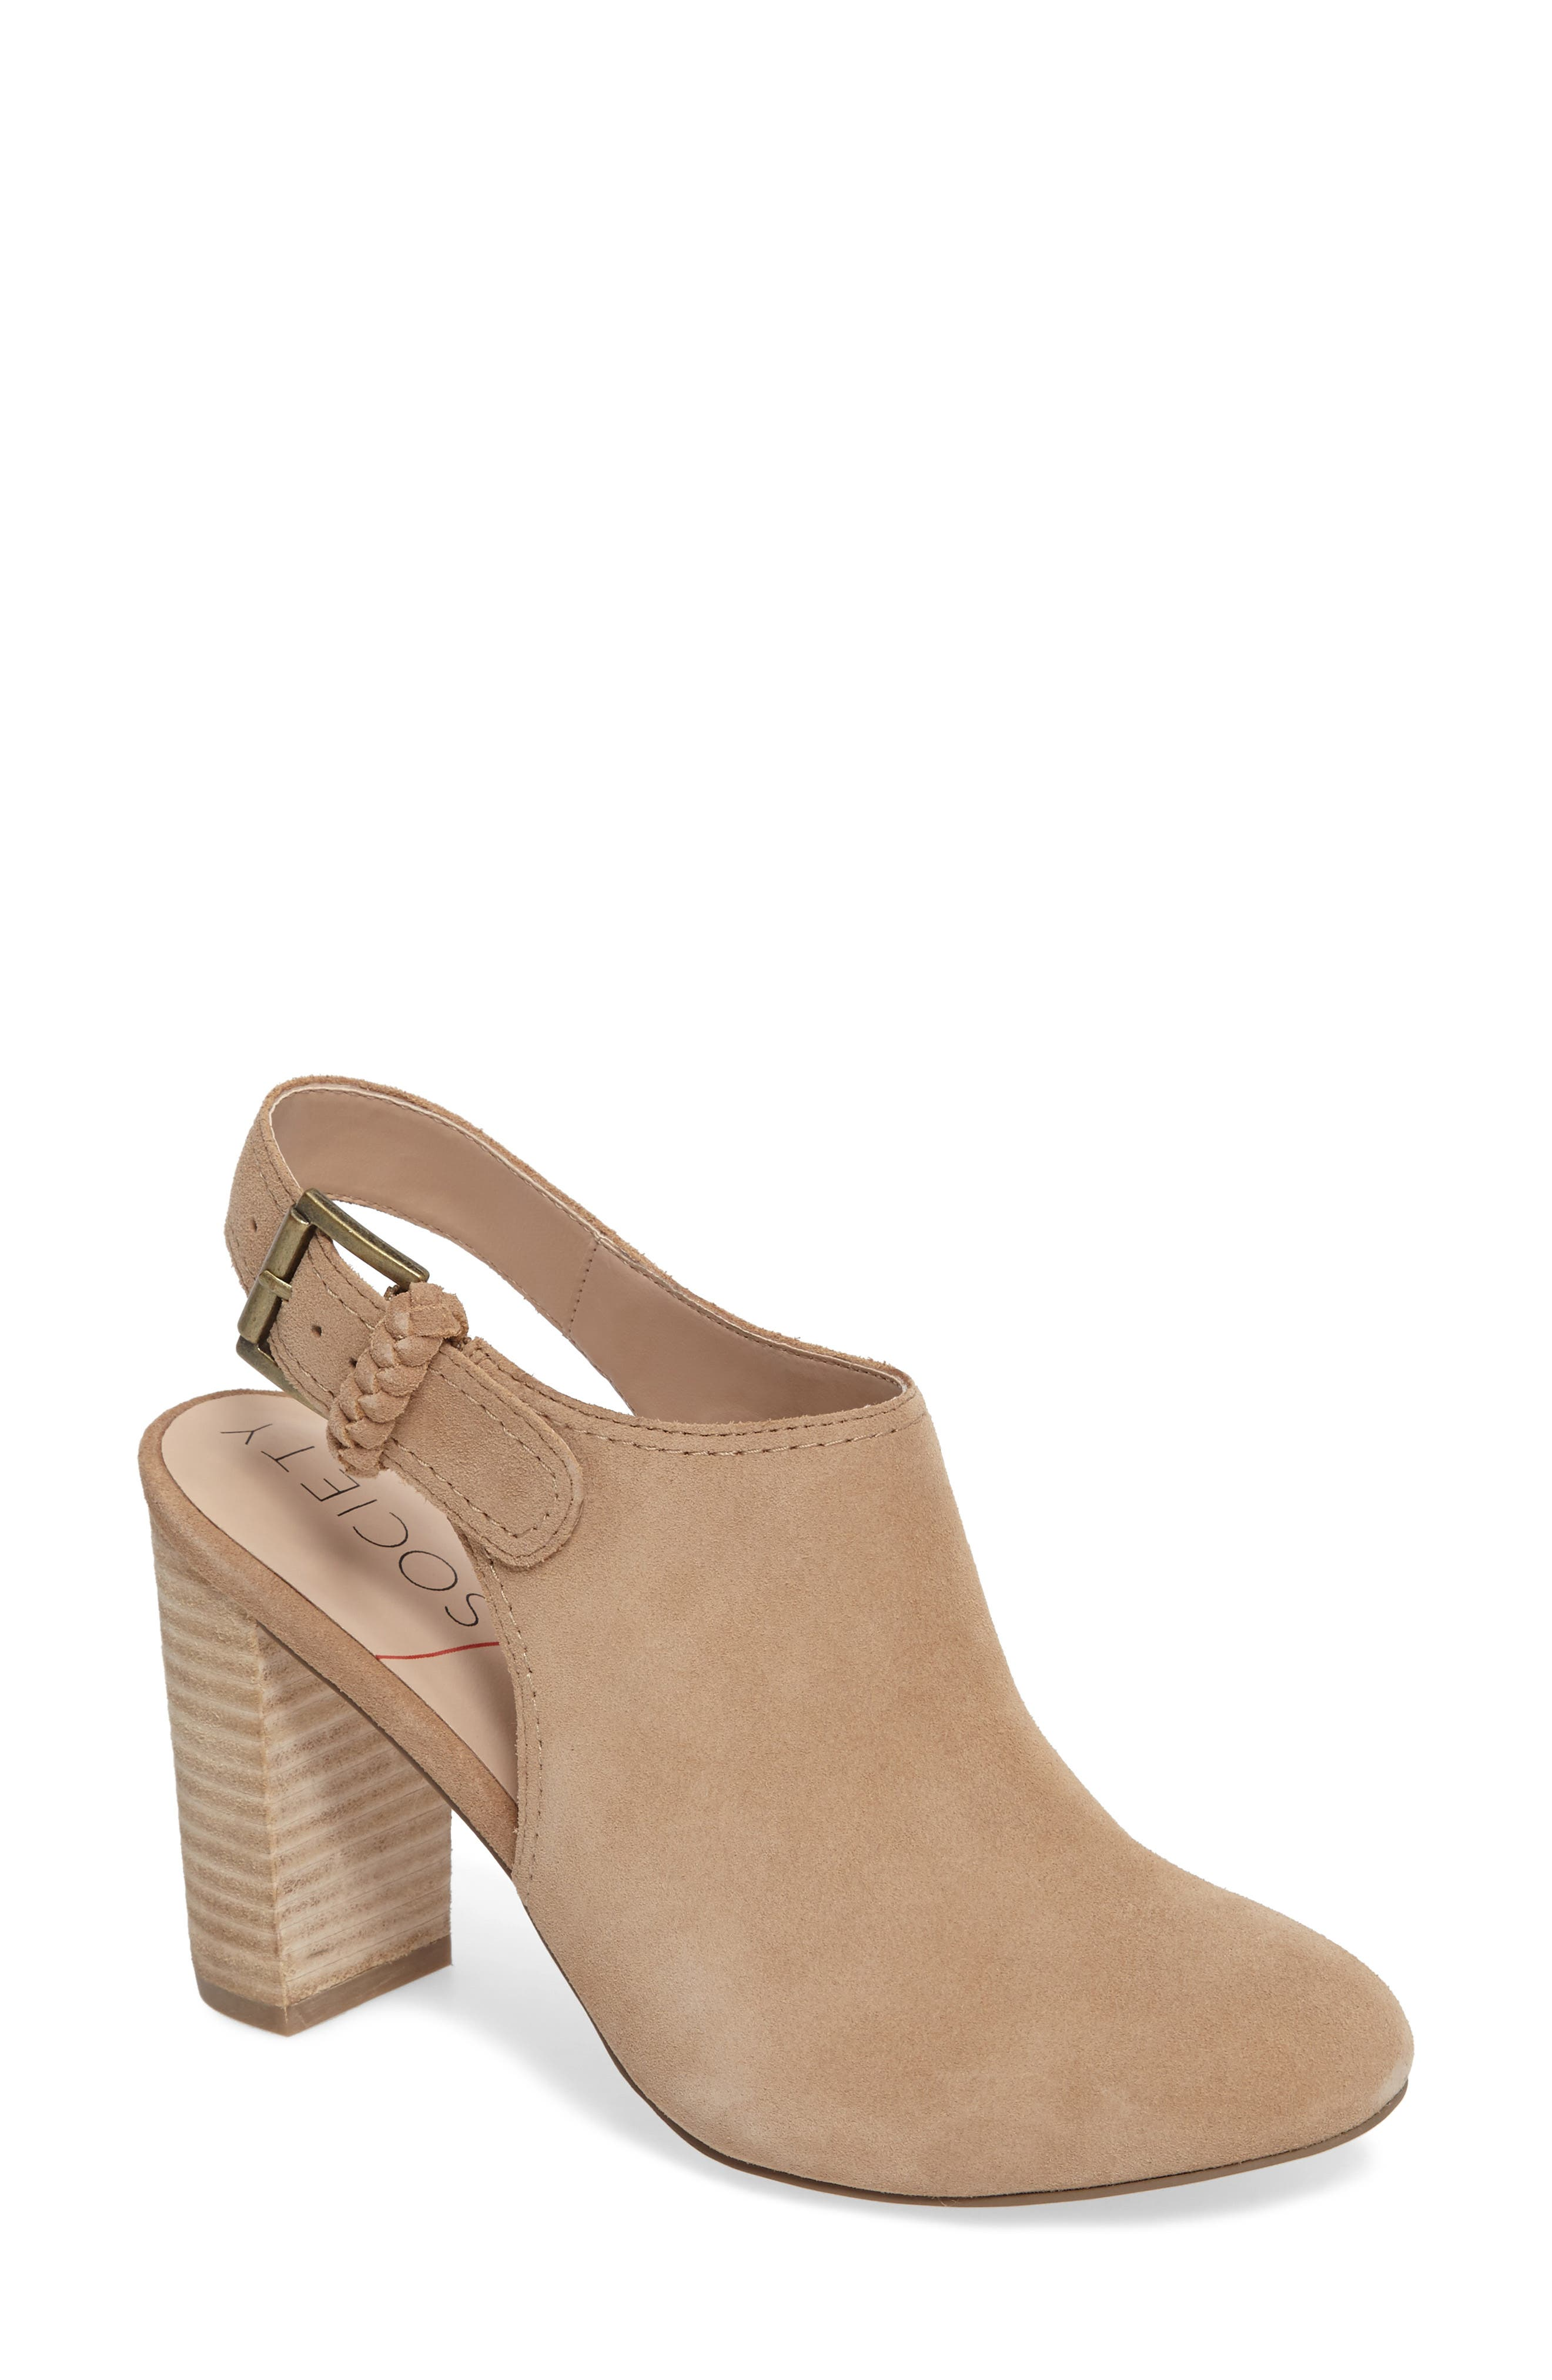 Alternate Image 1 Selected - Sole Society Apollo Slingback Bootie (Women)